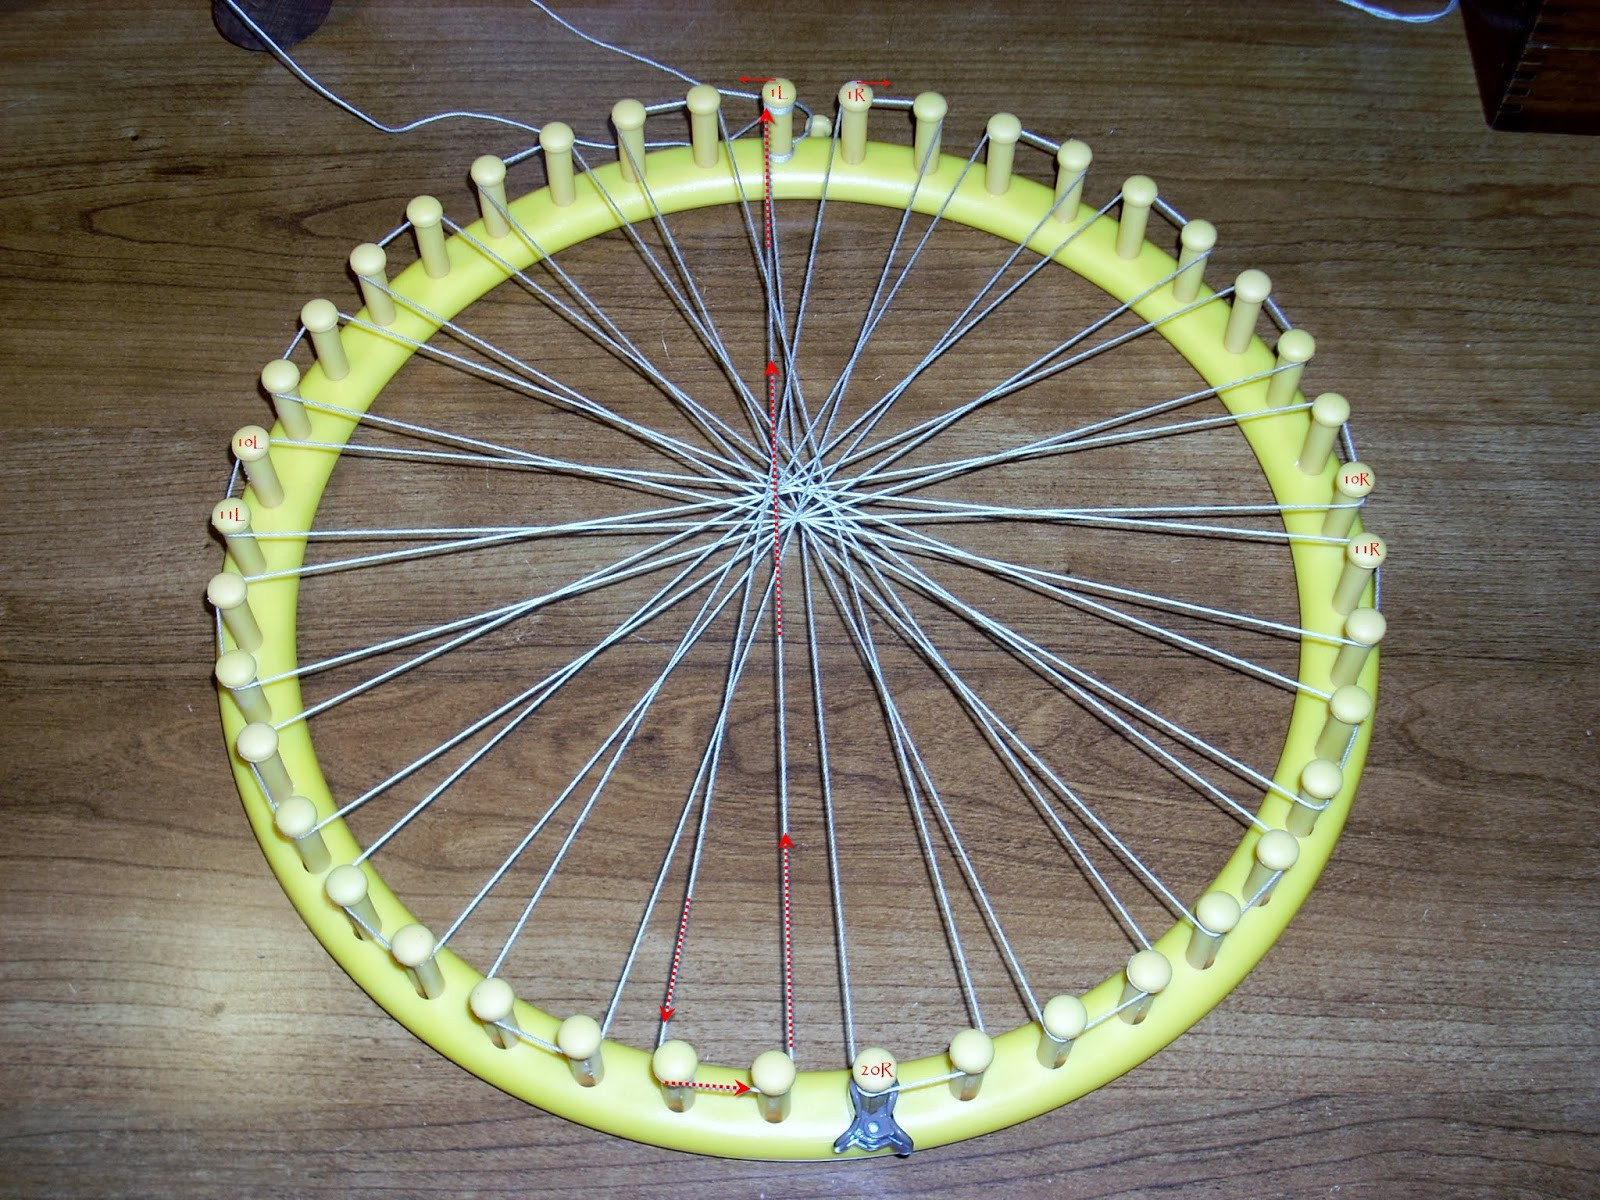 Awesome Heartsong Studio Warping A Knifty Knitter Loom for Circle Loom Knitting Of Superb 50 Images Circle Loom Knitting